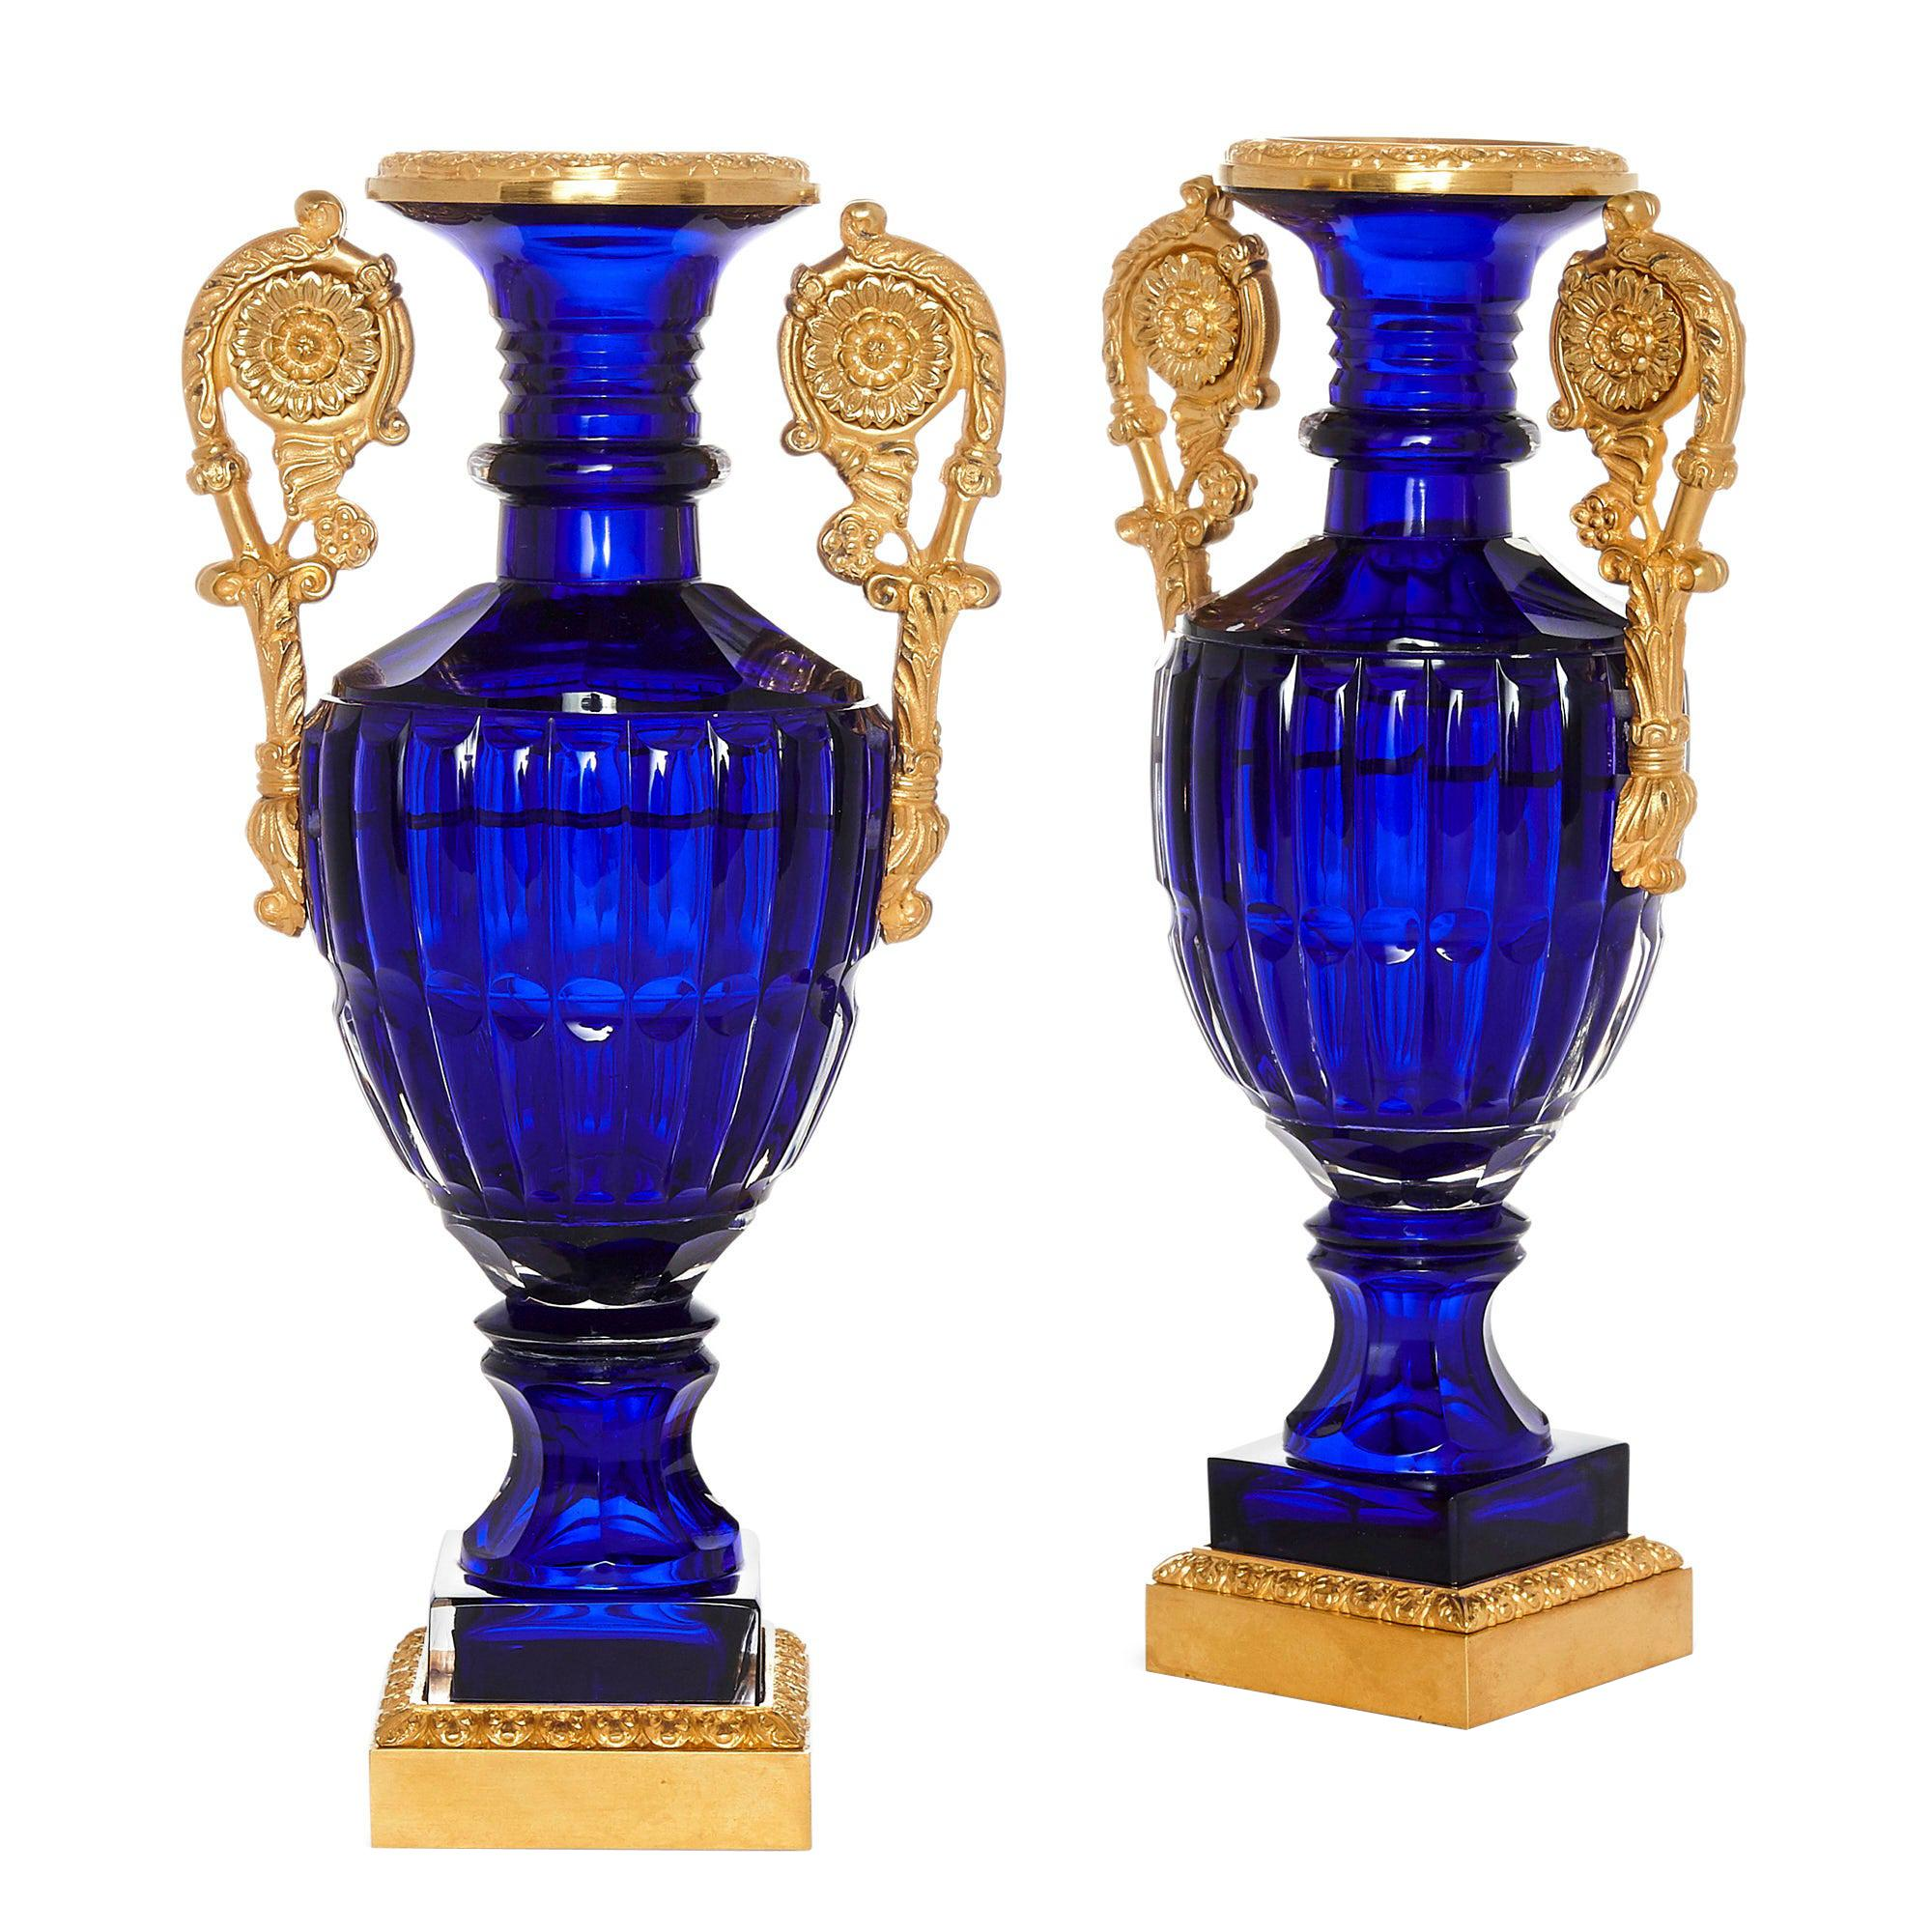 Two Neoclassical Style Russian Cut Glass and Ormolu Vases